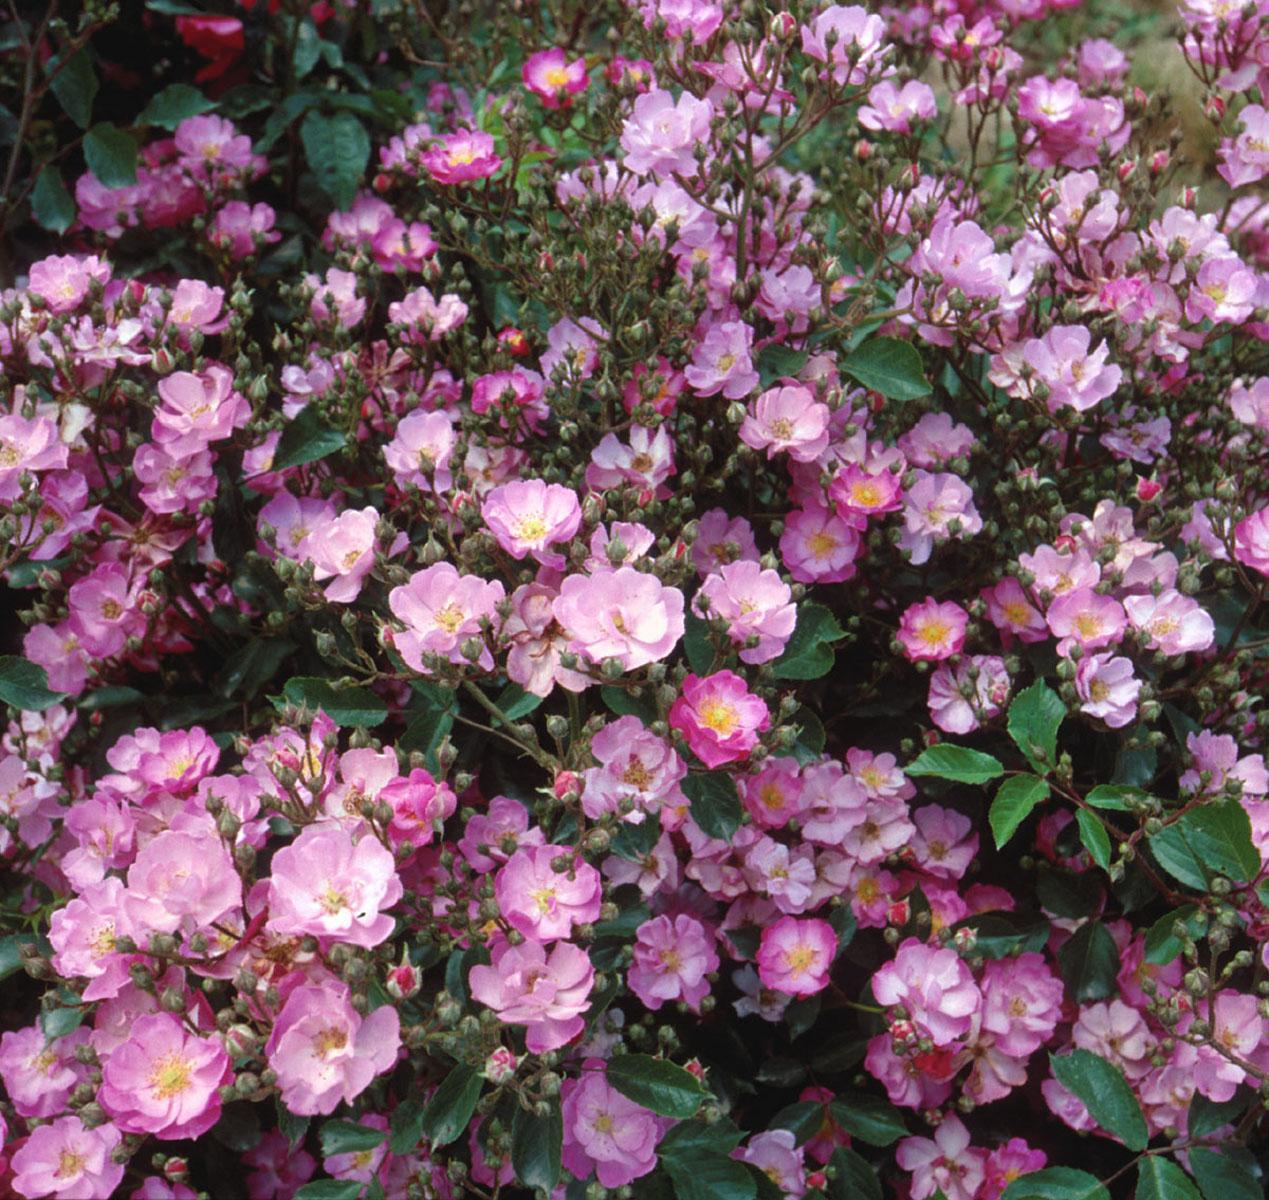 DayDream is a low-growing, compact landscape shrub rose reaching just 2 feet in height. A unique color in the shrub category, the massive clusters of lightly scented, fuchsia-pink blooms will flower all summer long. Foliage is glossy, deep green and highly disease resistant. DayDream's moderate size and neat, round habit make it an appropriate choice for a variety of garden situations.